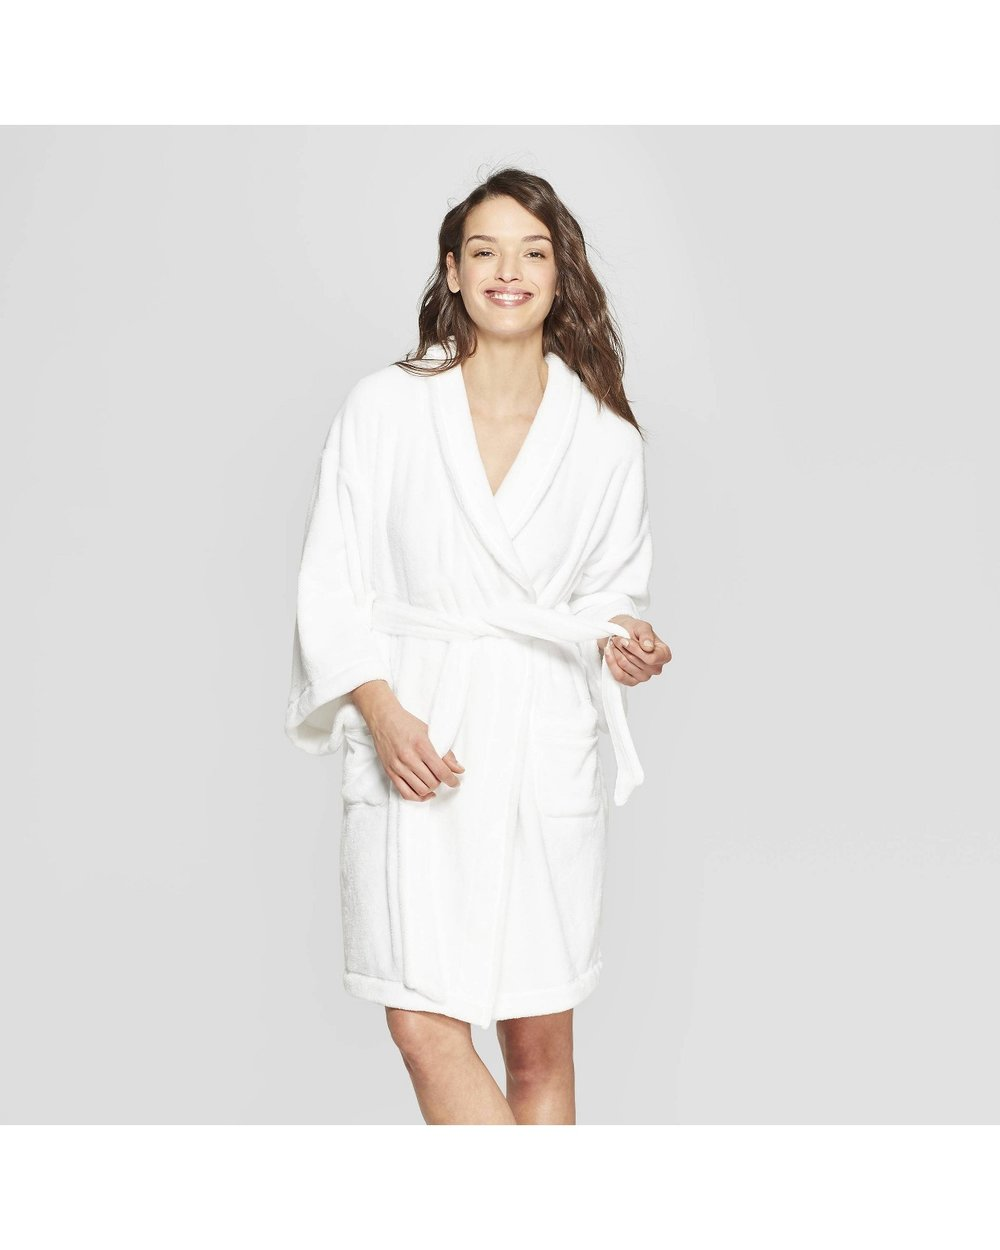 - Give me all the comfy things please. This is super cozy y'all. Stars Above is a new sleep line at Target and I'm all about it. This robe is at the top of my list, but be sure to check out their cute pj's too!Find it here.